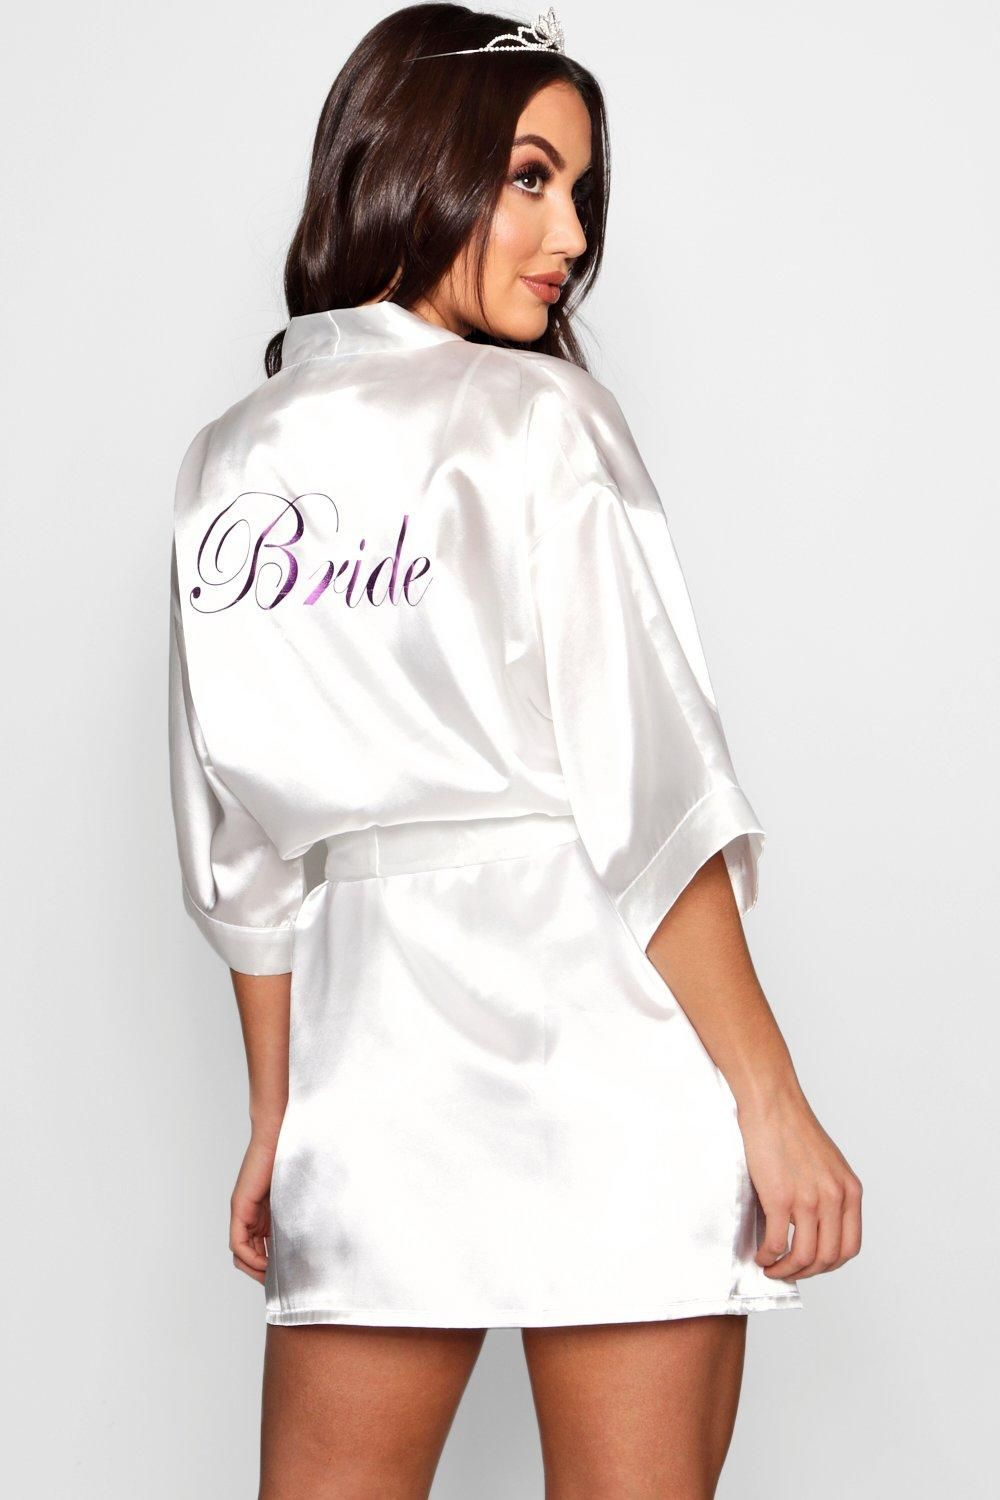 bc5143bac2a3 Click here to find out about the Mary Bride Metallic Robe from Boohoo, part  of our latest Nightwear & Onesies collection ready to shop online today!